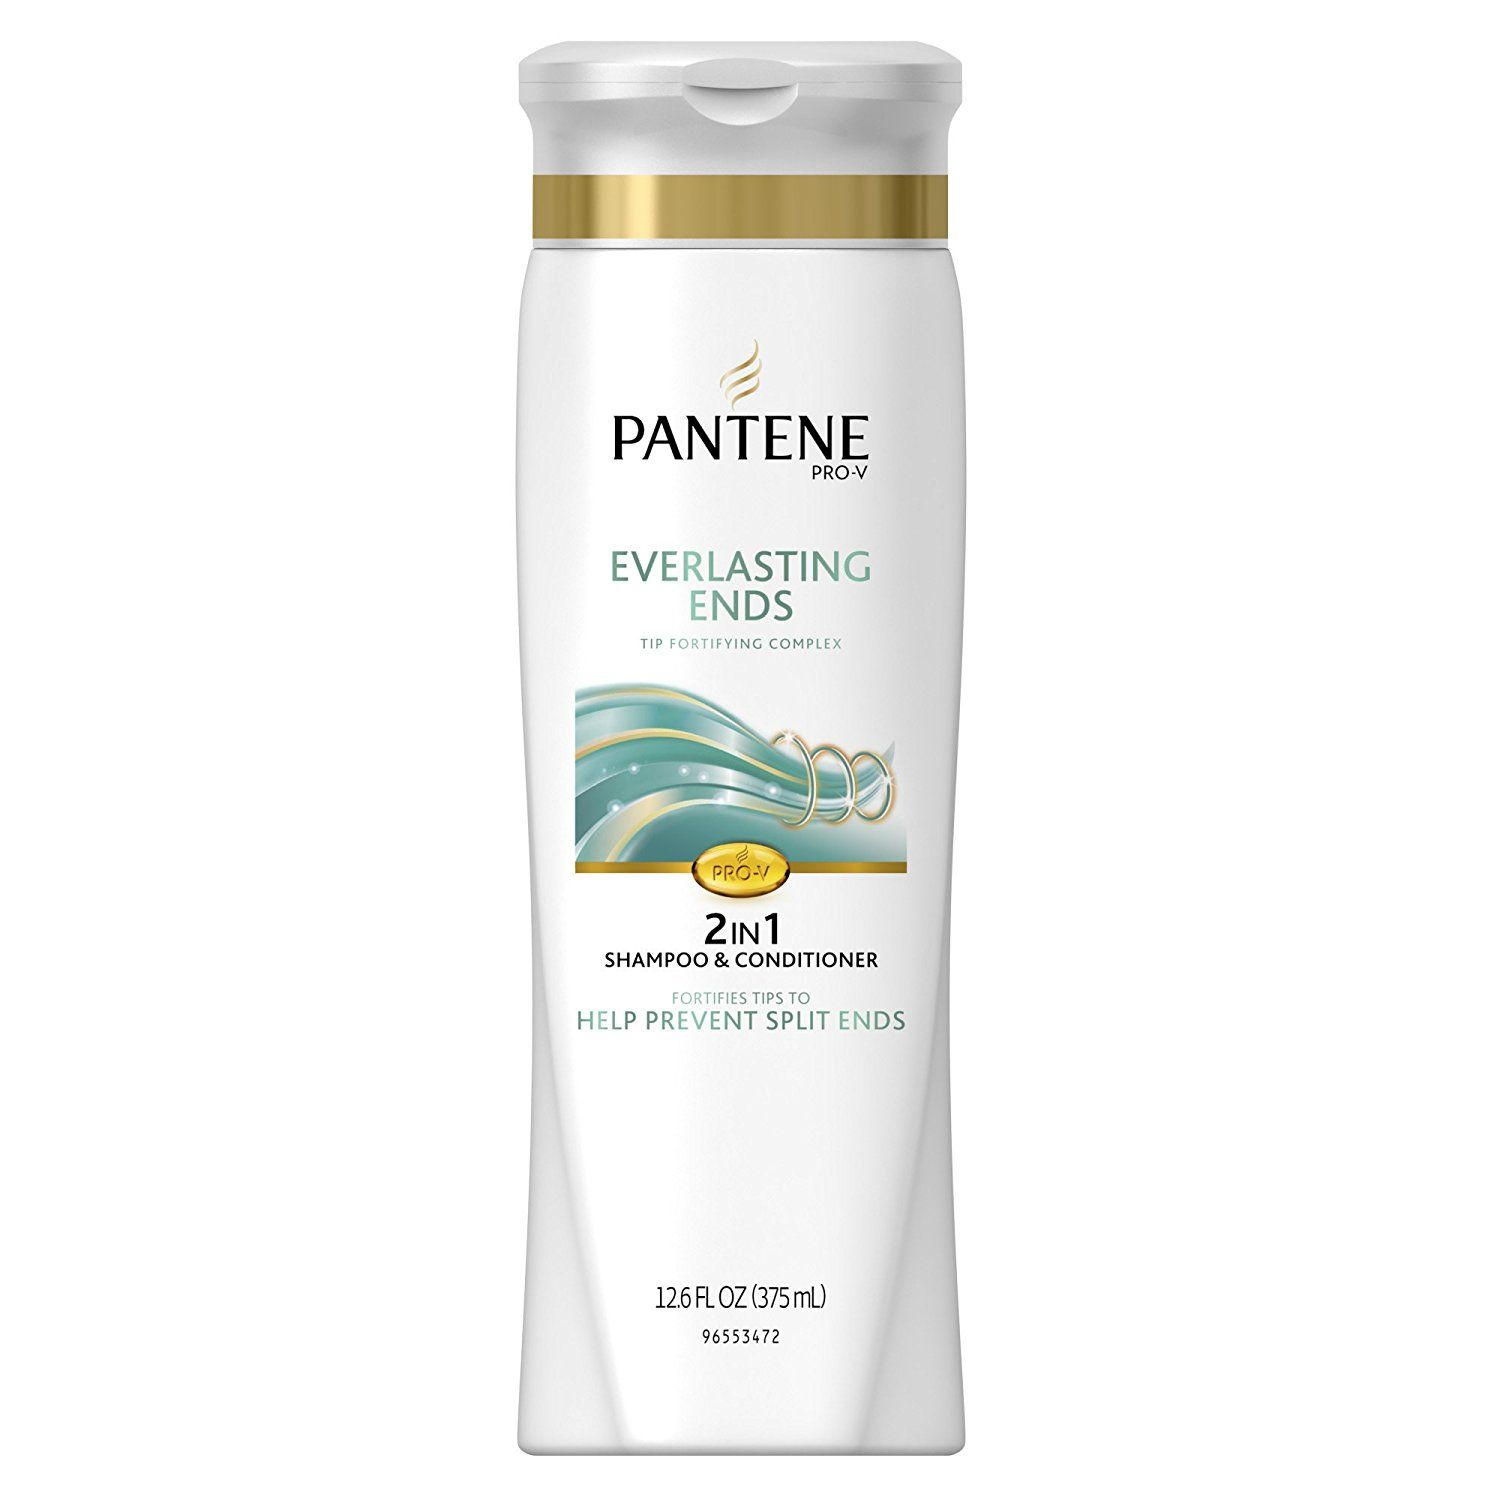 Pantene ProV Everlasting Ends 2 in 1 Shampoo and